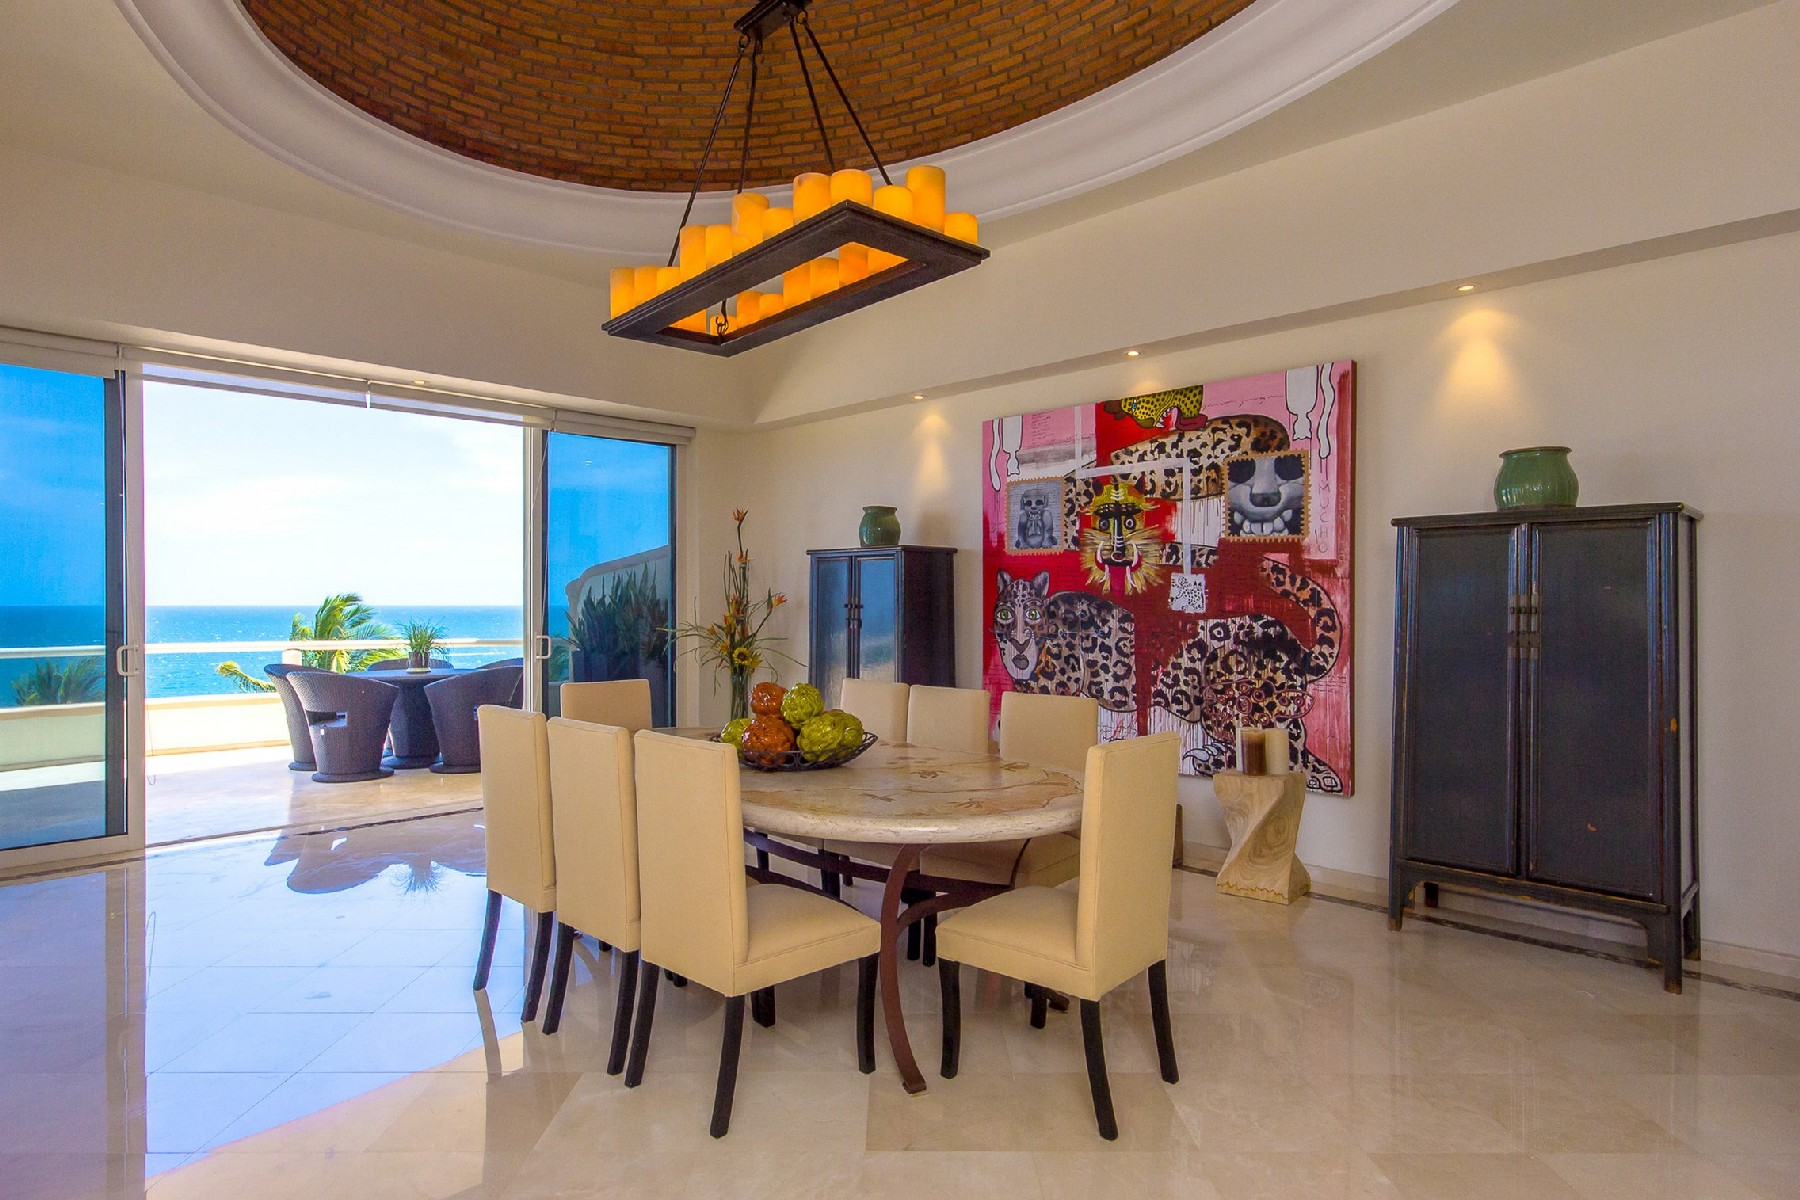 Additional photo for property listing at Quinta del Mar II PH 602 Puerto Vallarta, Jalisco México